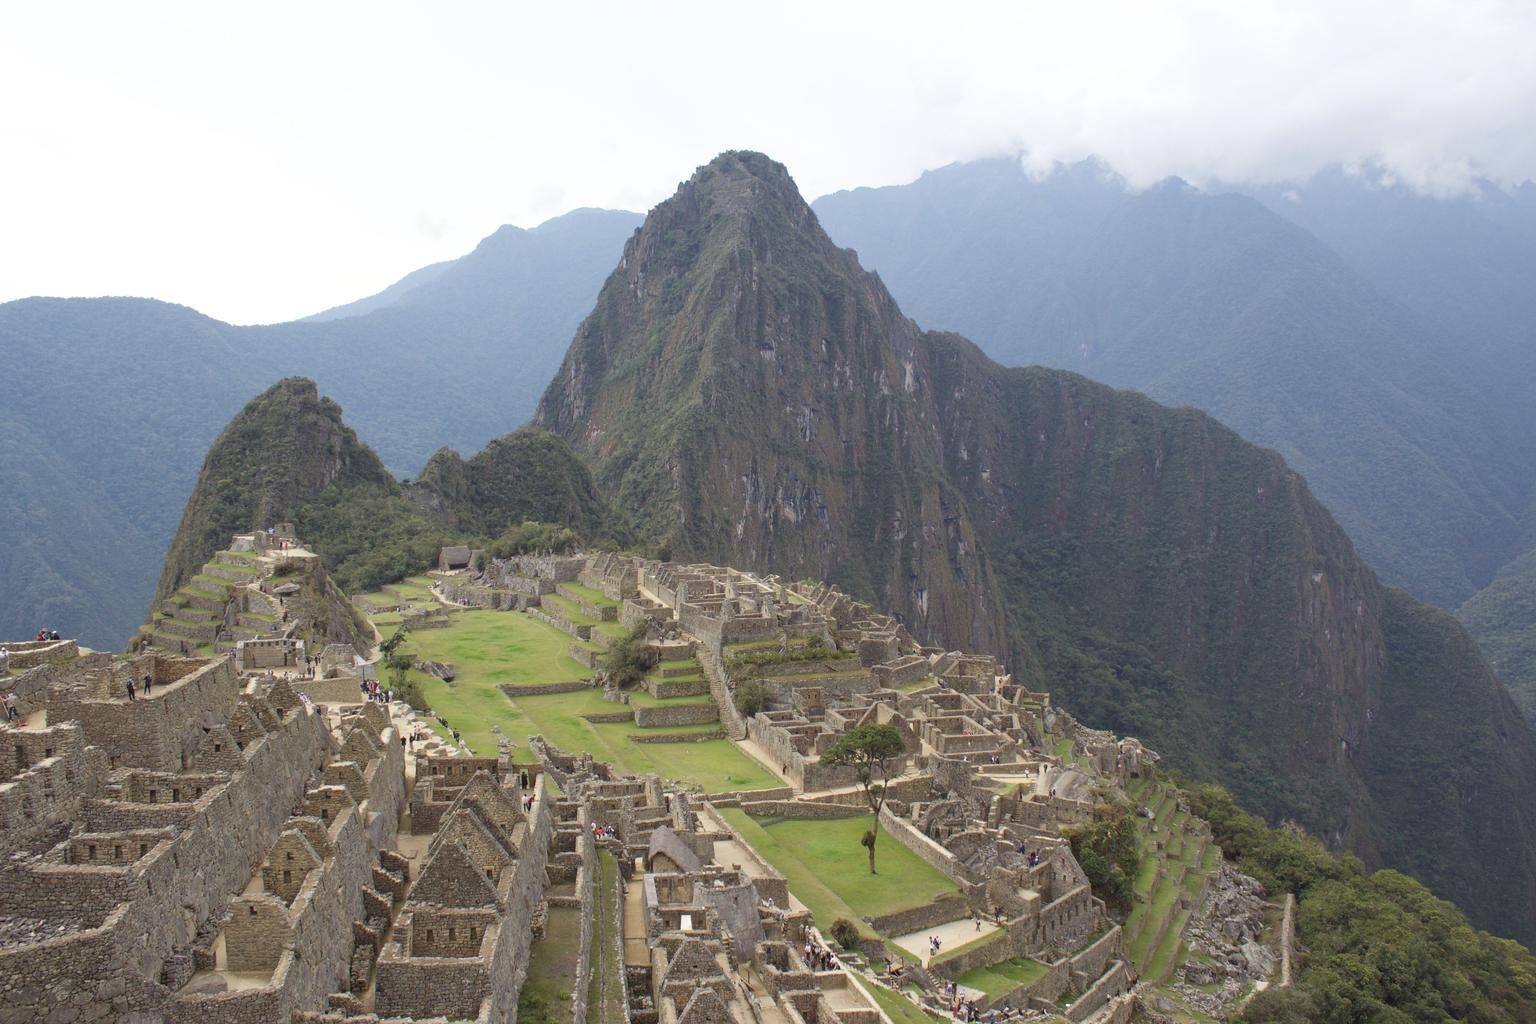 MORE PHOTOS, Machu Picchu Full Day from Cusco